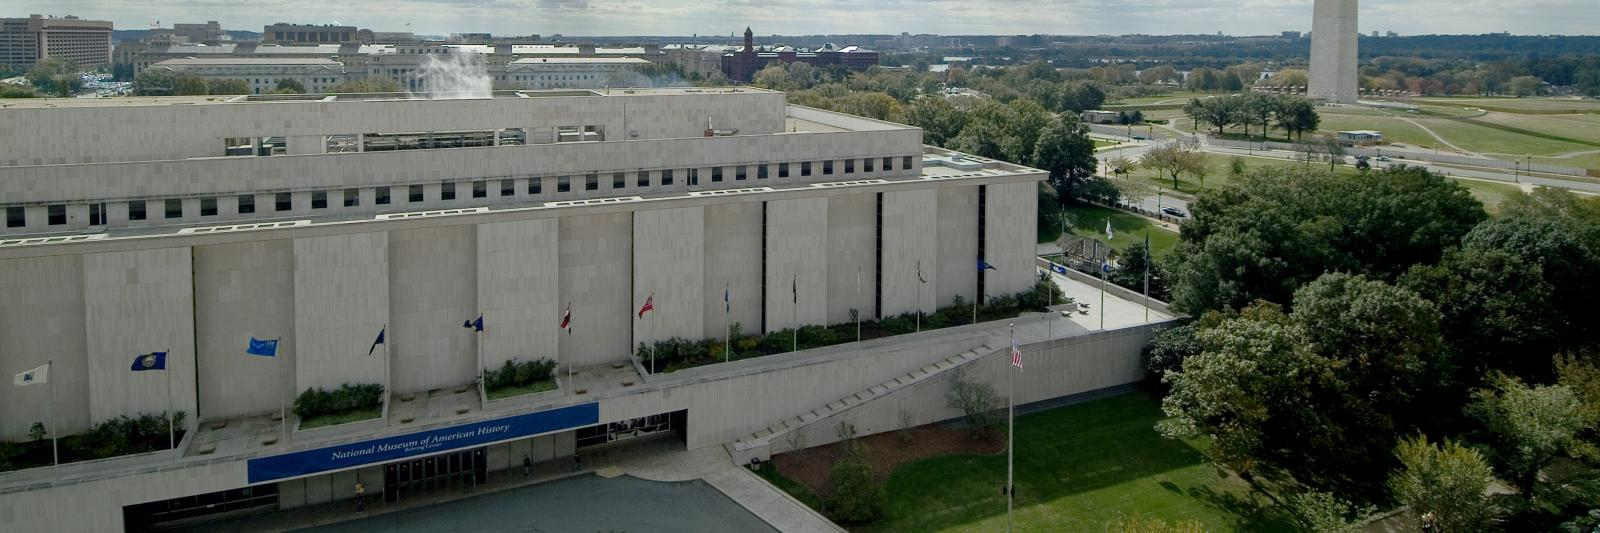 Aerial photo of the National Museum of American History with the Washington National Monument in the background